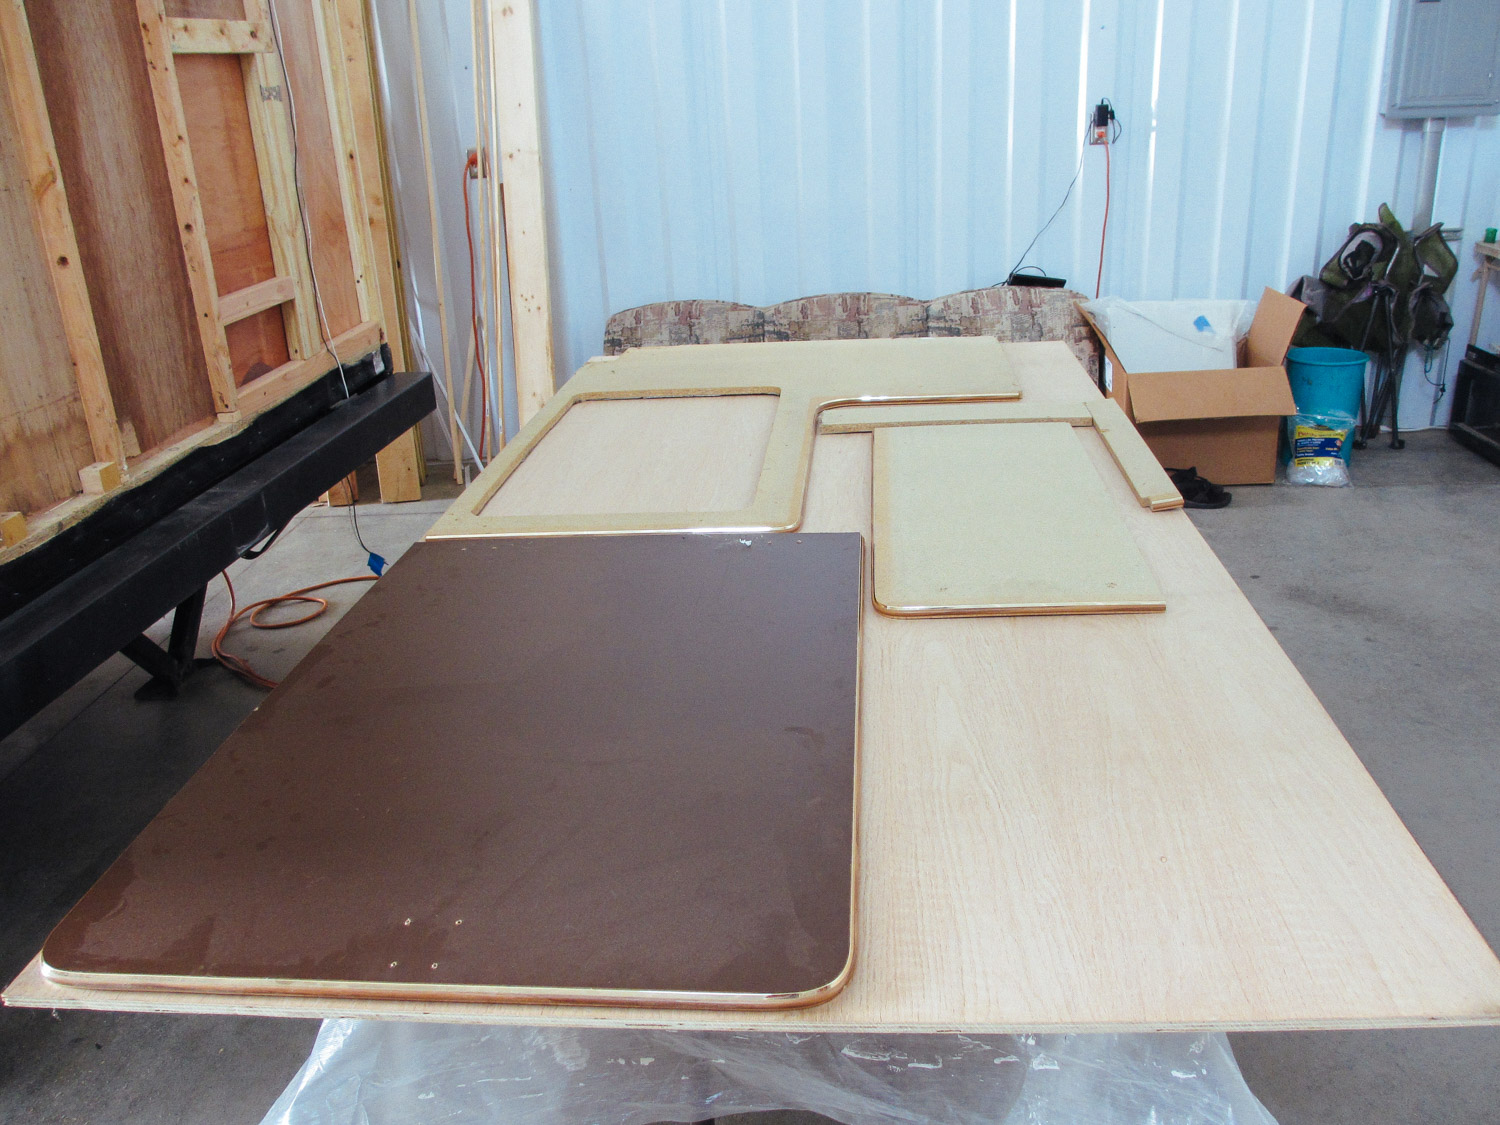 We traced the original kitchen countertop and flip-up on oak plywood to make new countertops.